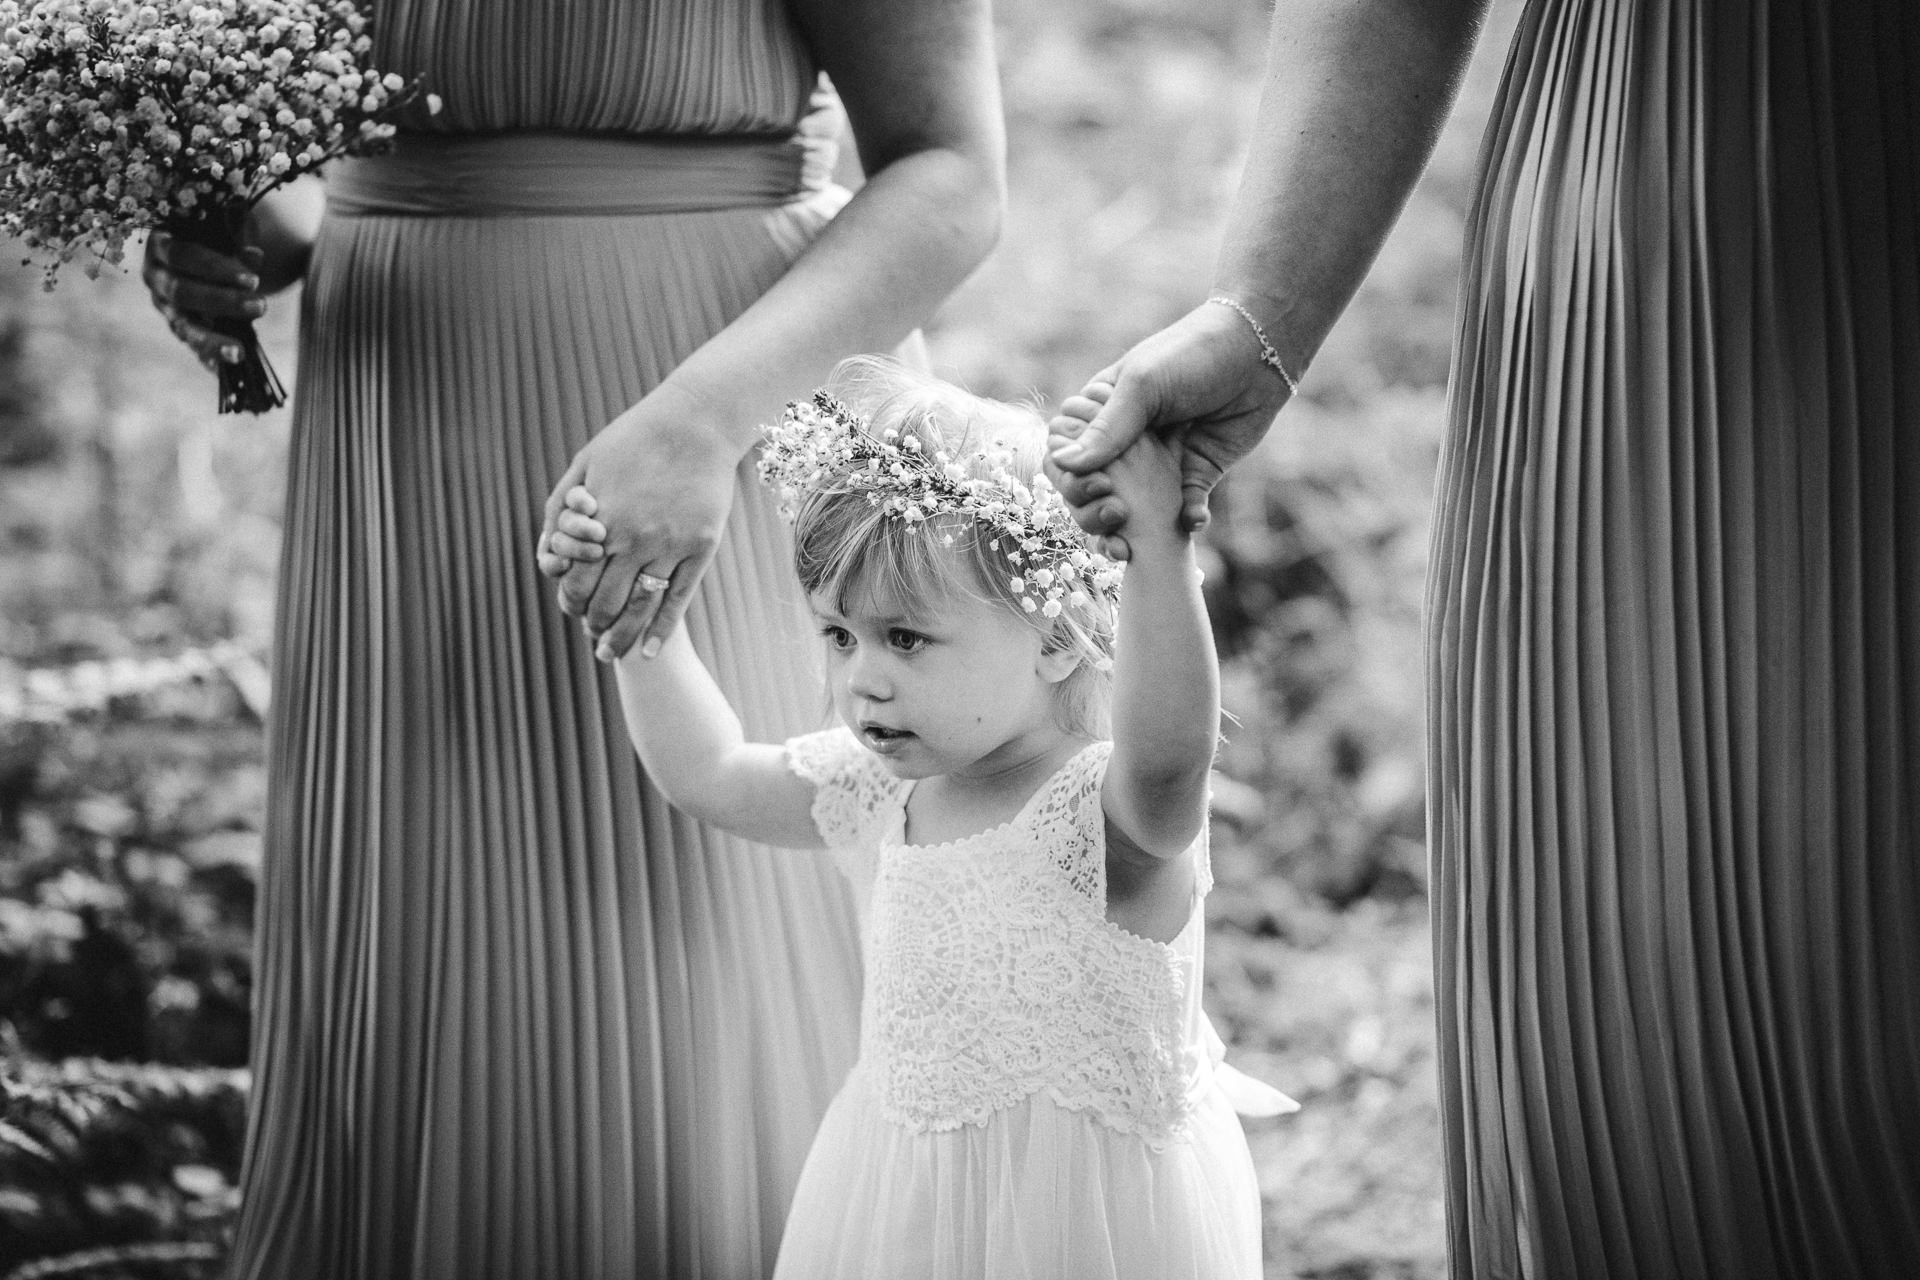 0067-DEVON-SOMERSET-WEDDING-PHOTOGRAPHER-0301-BEST-OF-2019-LOUISE-MAY-DEVON-SOMERSET-WEDDING-PHOTOGRAPHY-LM1_6716